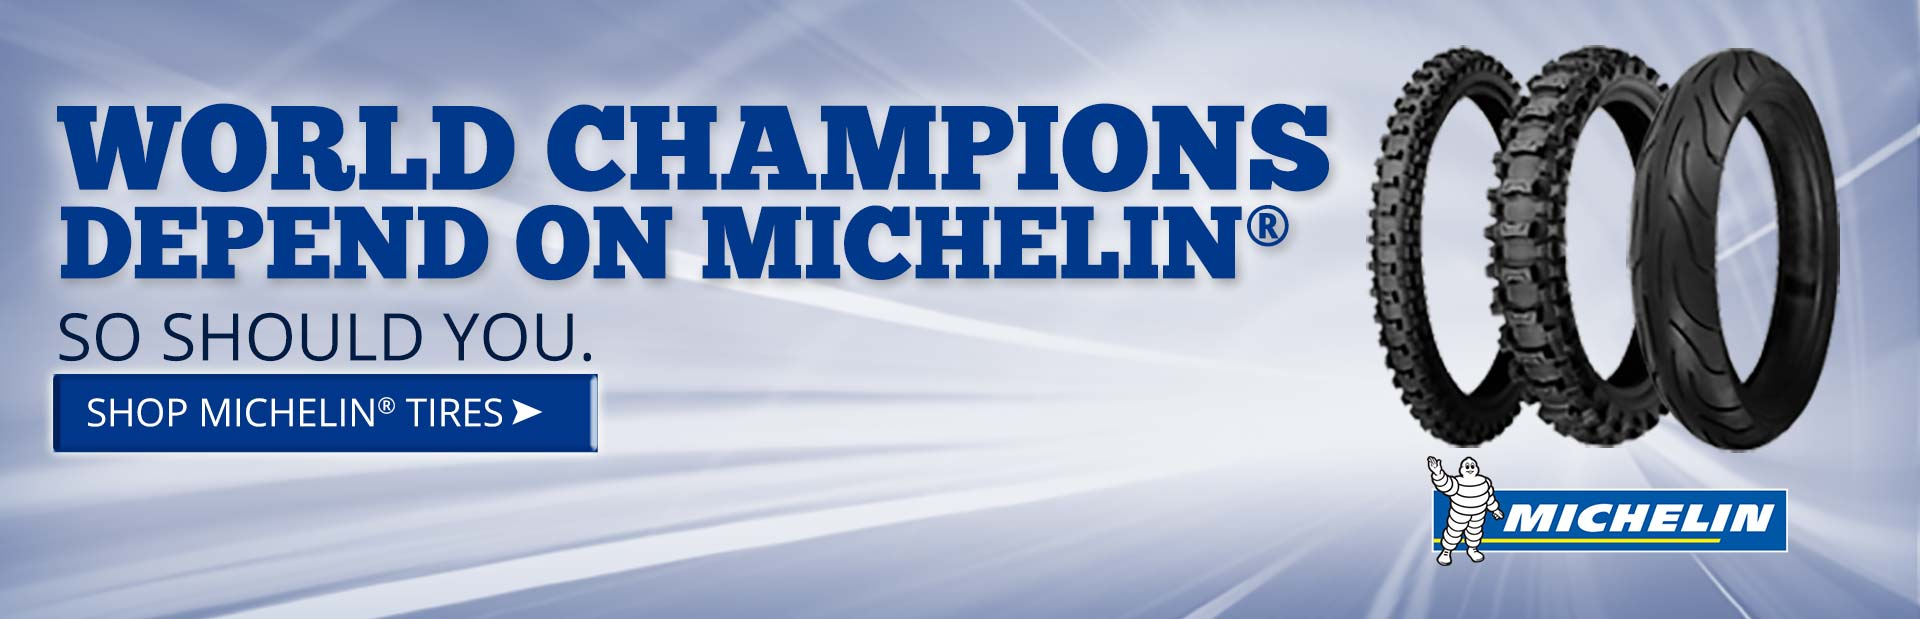 hight resolution of shop michelin tires